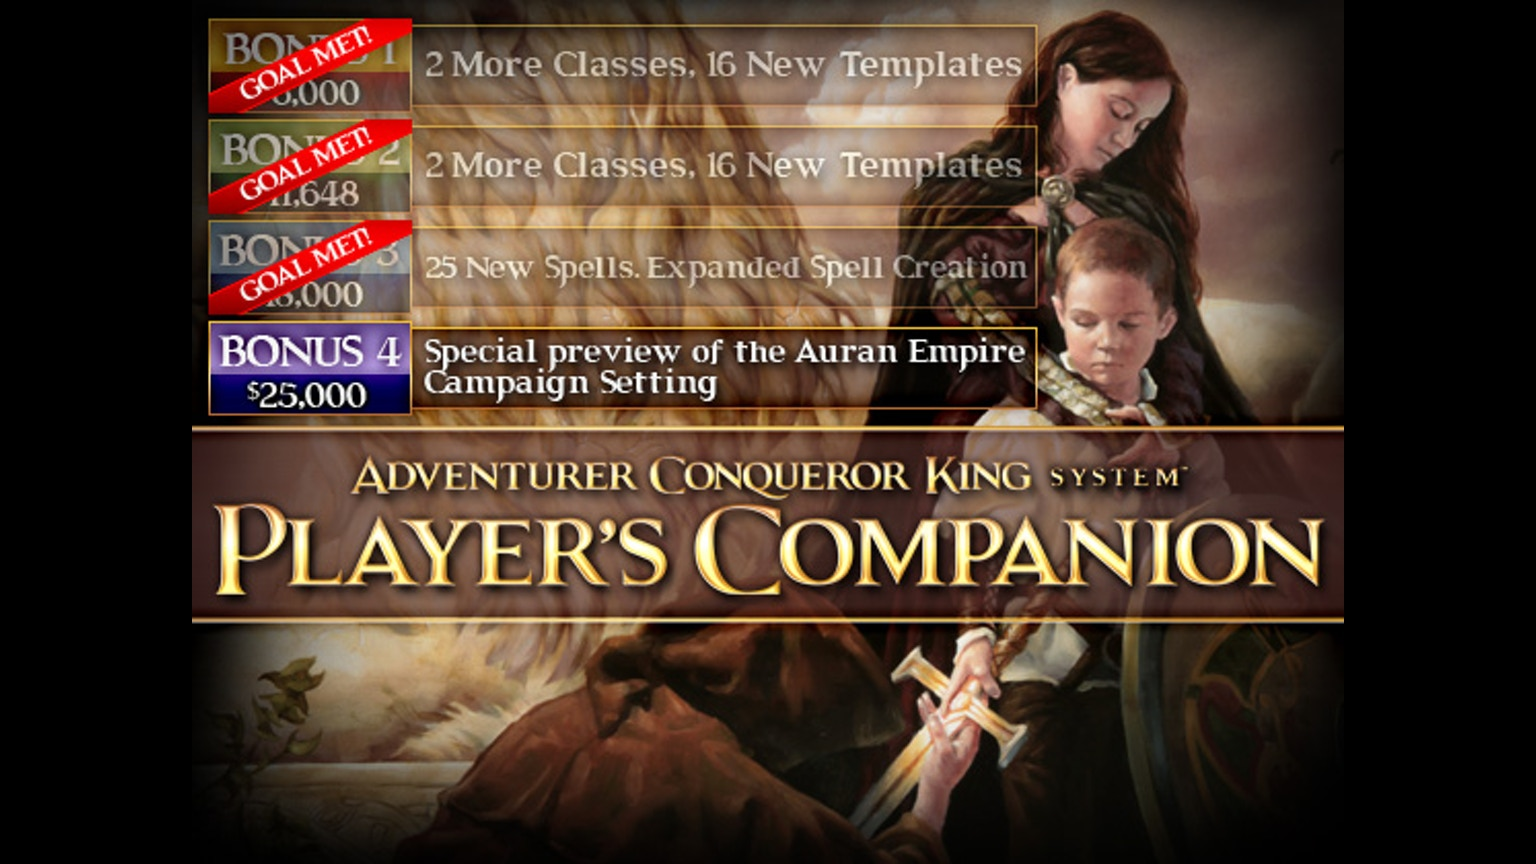 Player S Companion For The Adventurer Conqueror King Rpg